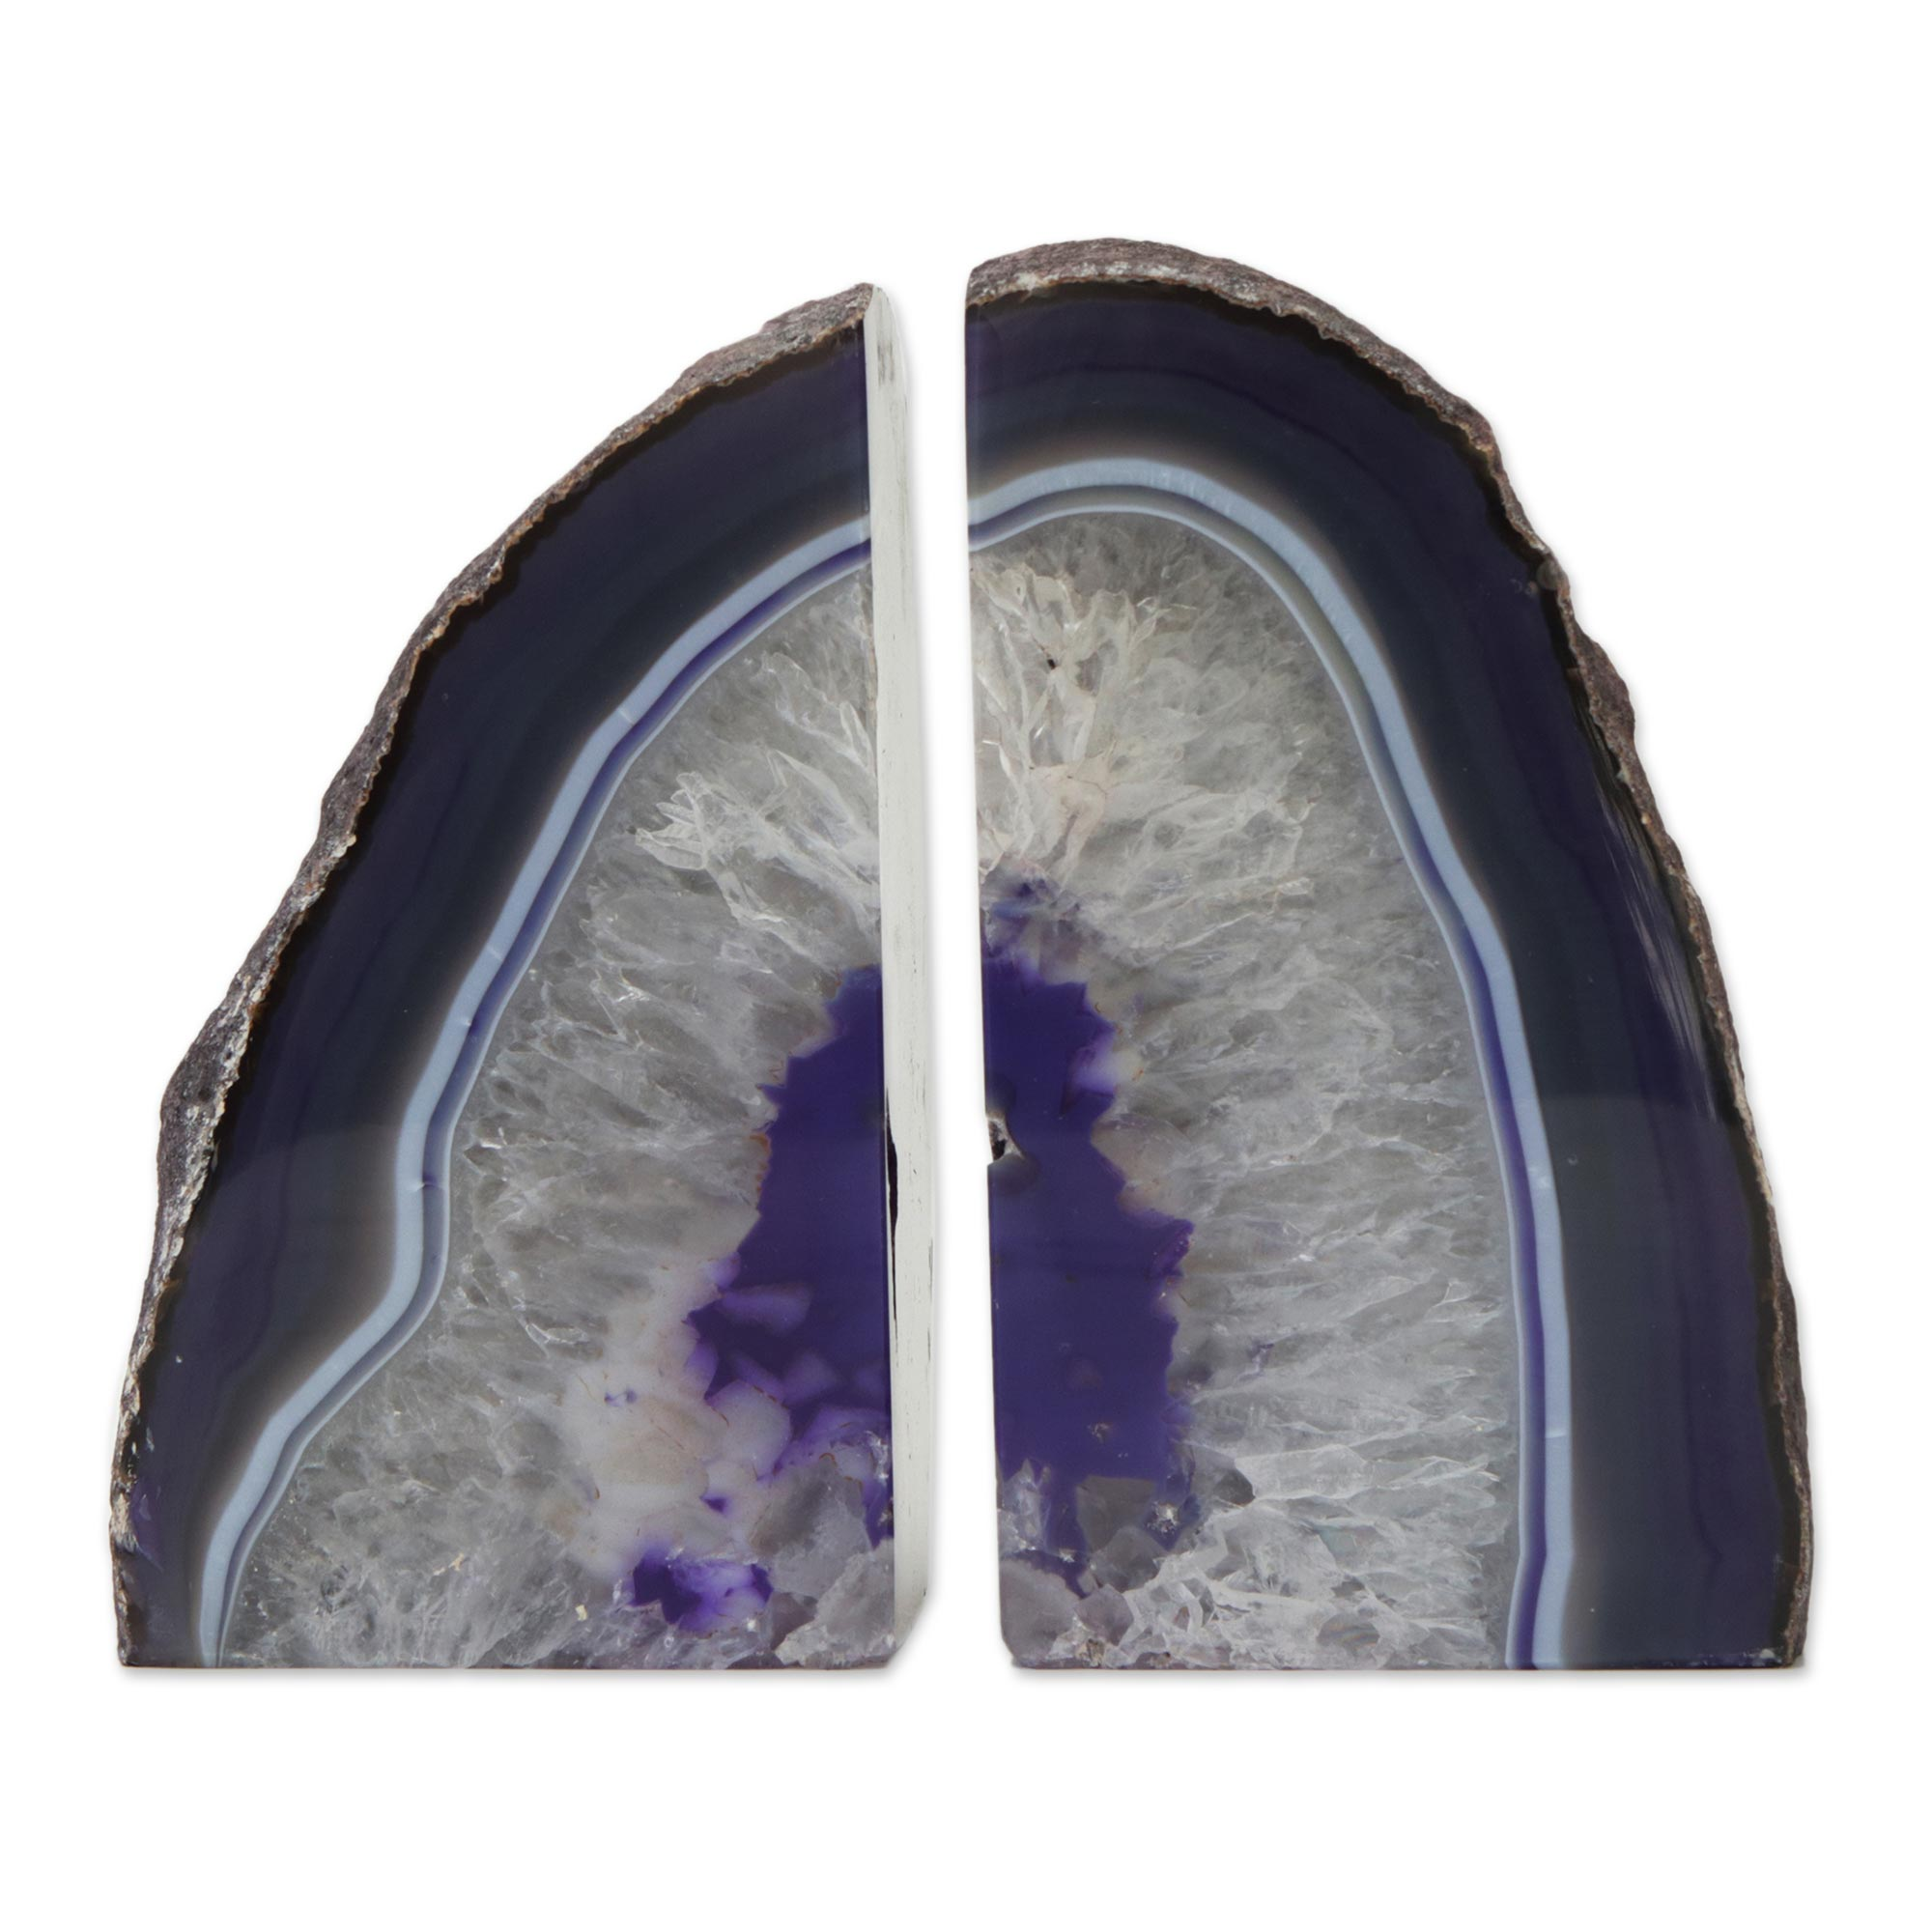 Unicef Market Agate Geode Bookends With A Purple Core From Brazil Regal Crystal